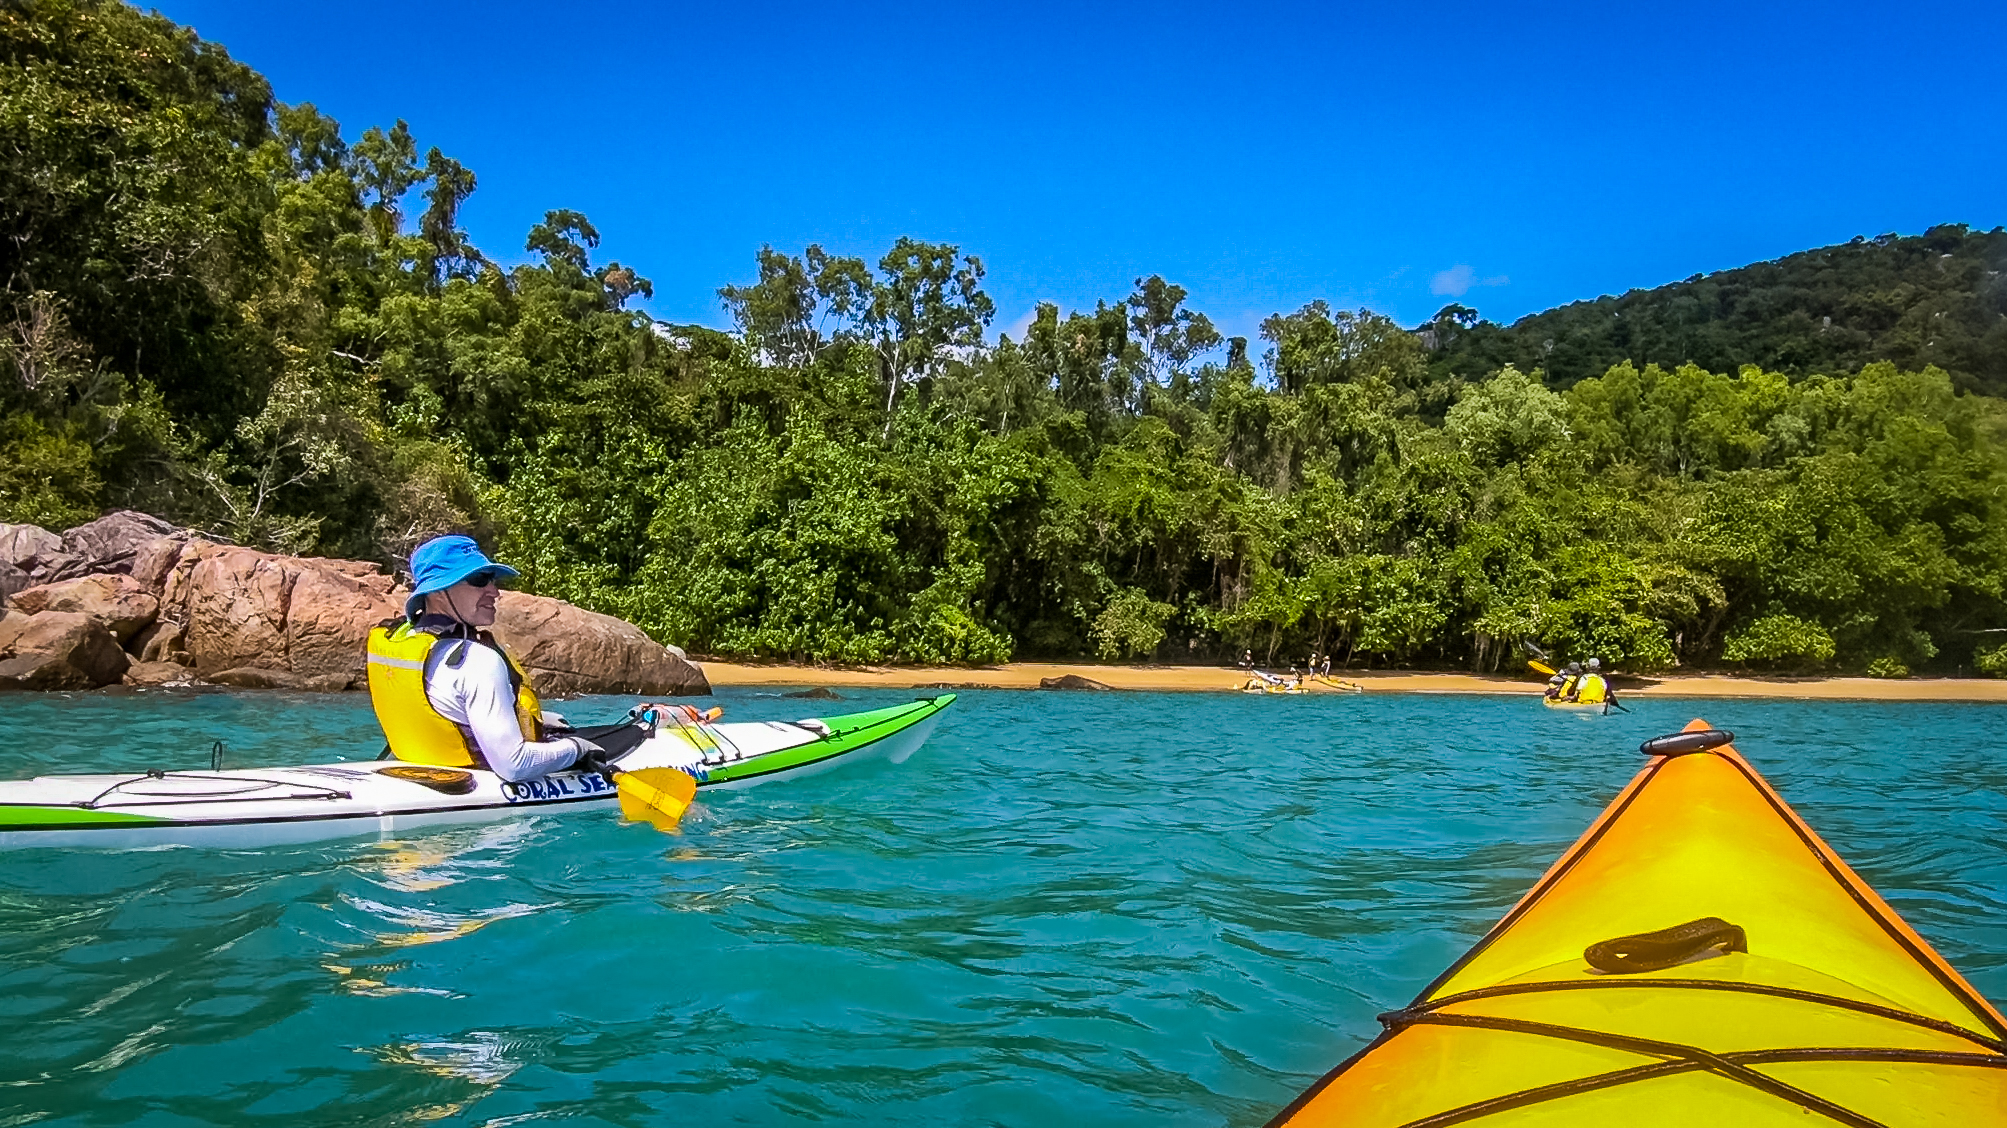 Tropical north Sea Kayak Adventure - Join us for a 4 day paddling adventure in the warm tropical waters of North Queensland.See Details